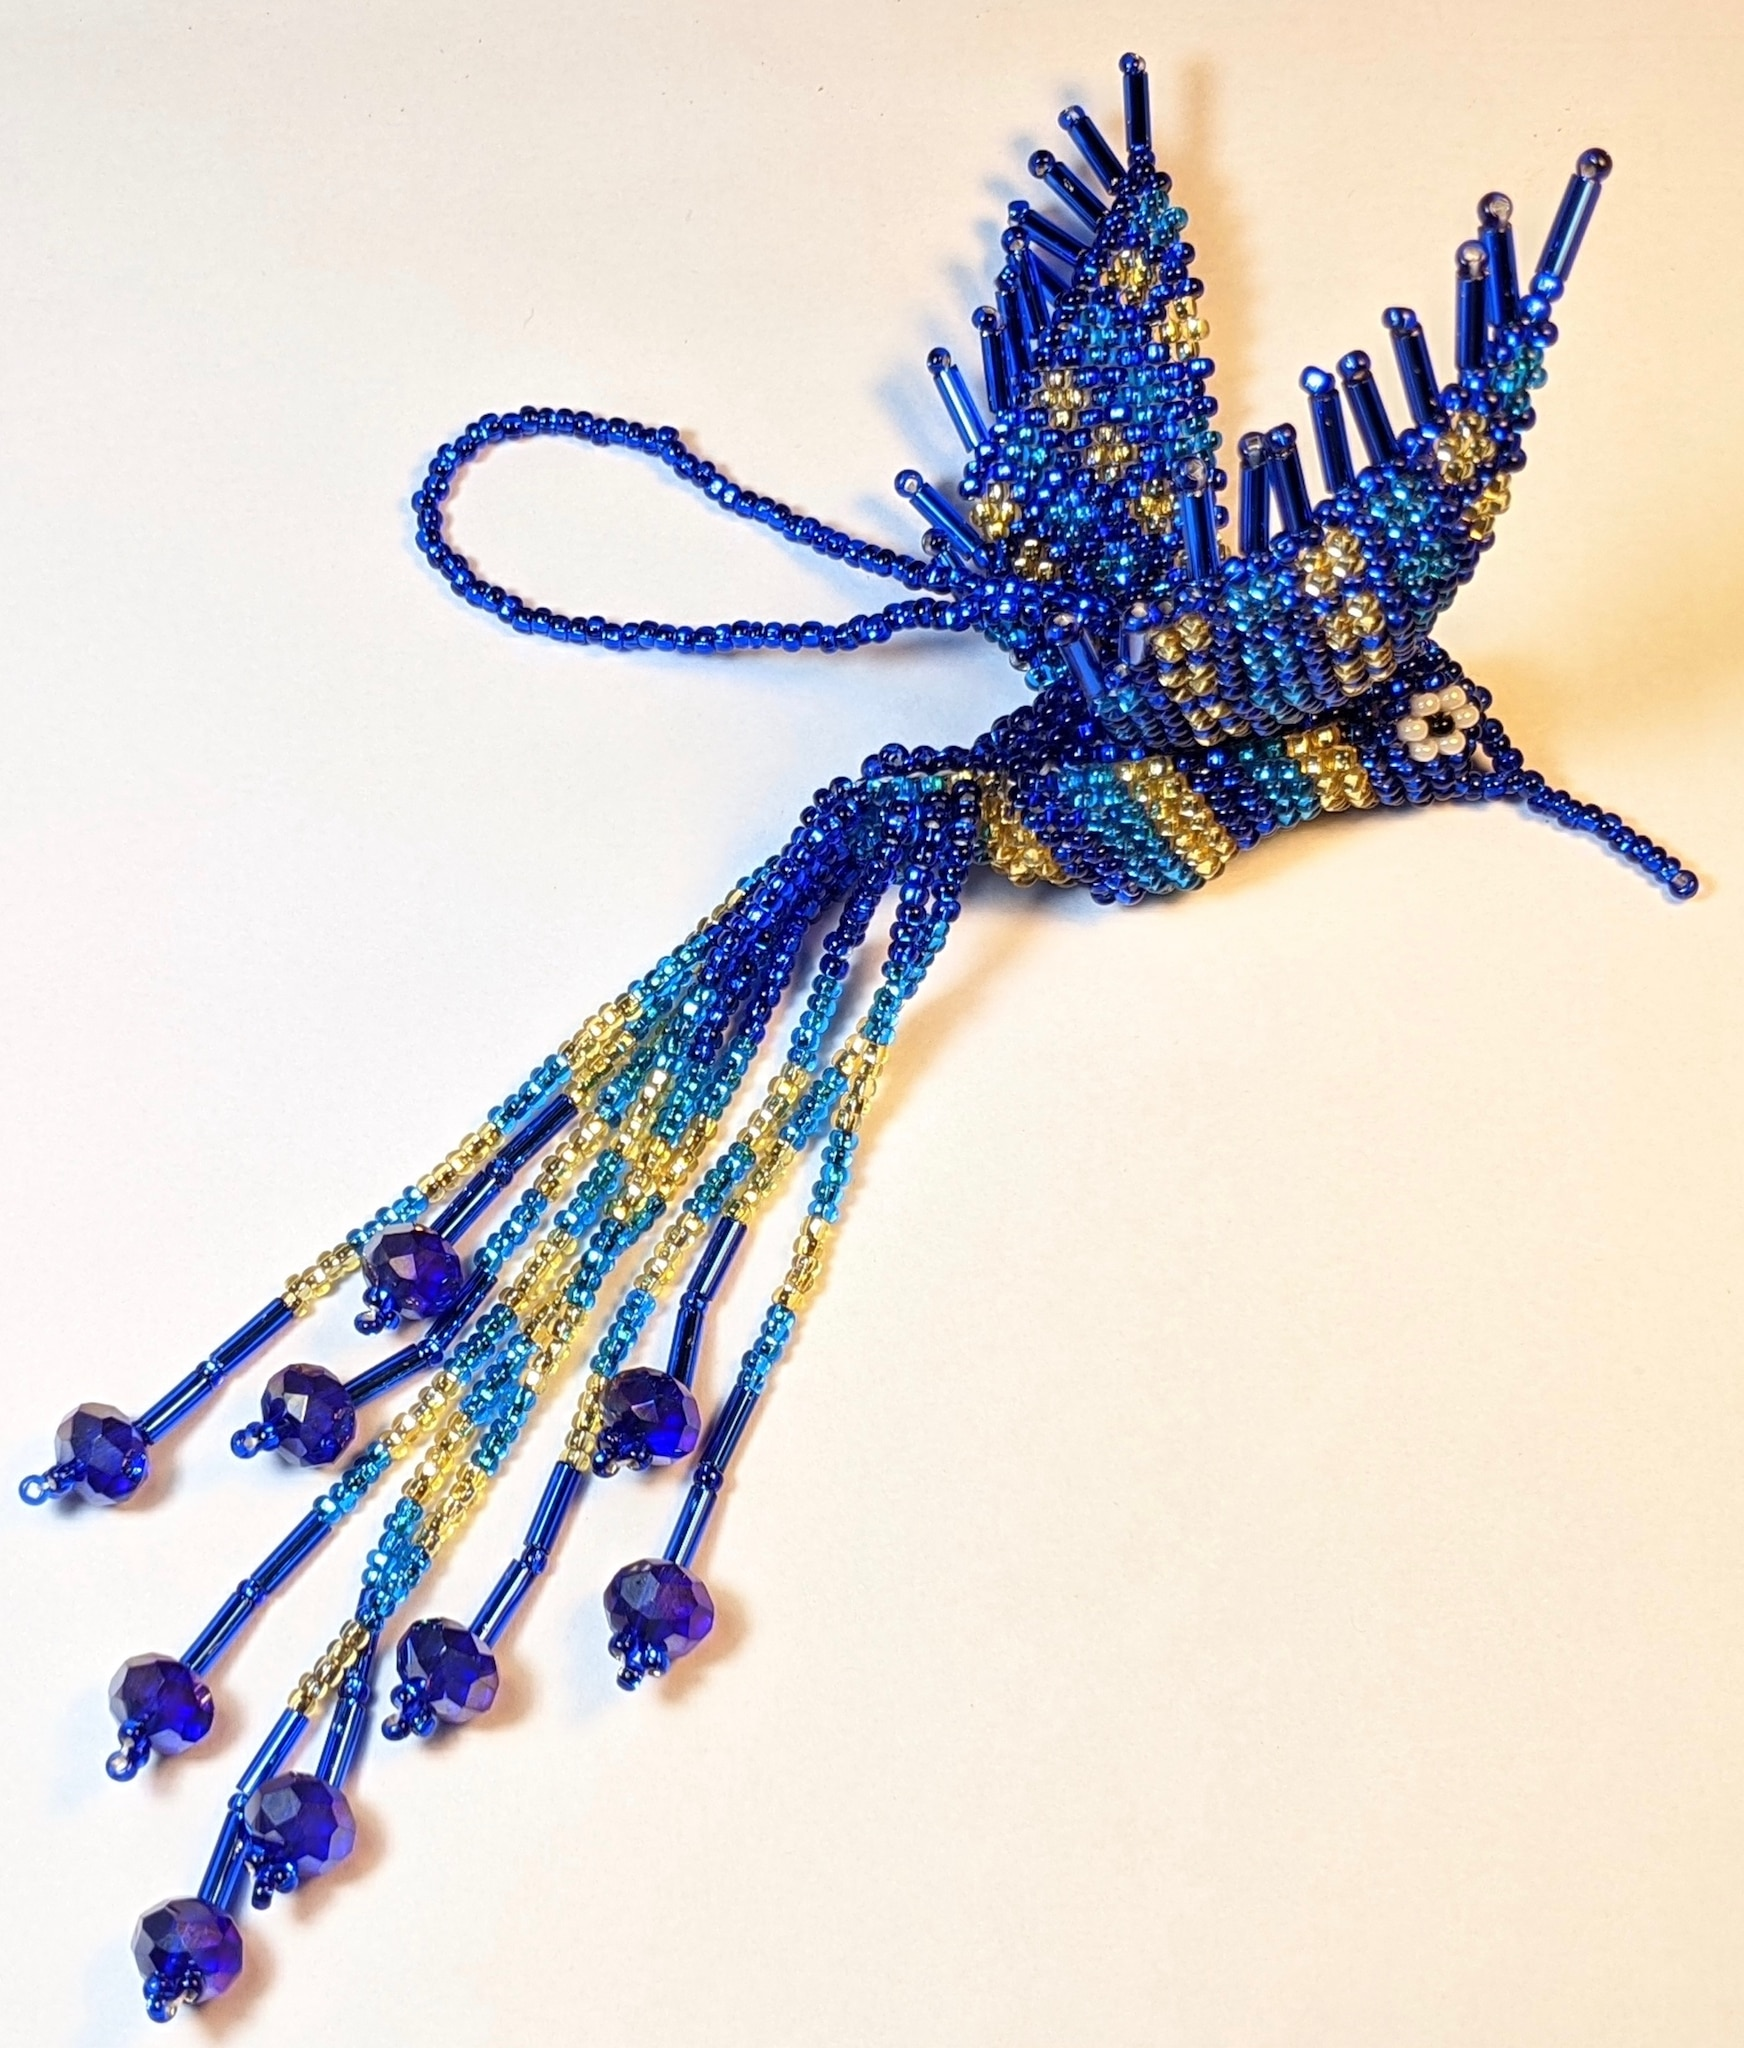 Hummingbird Beaded Ornament - Sapphire Blue, Celestial Blue, and Light Gold